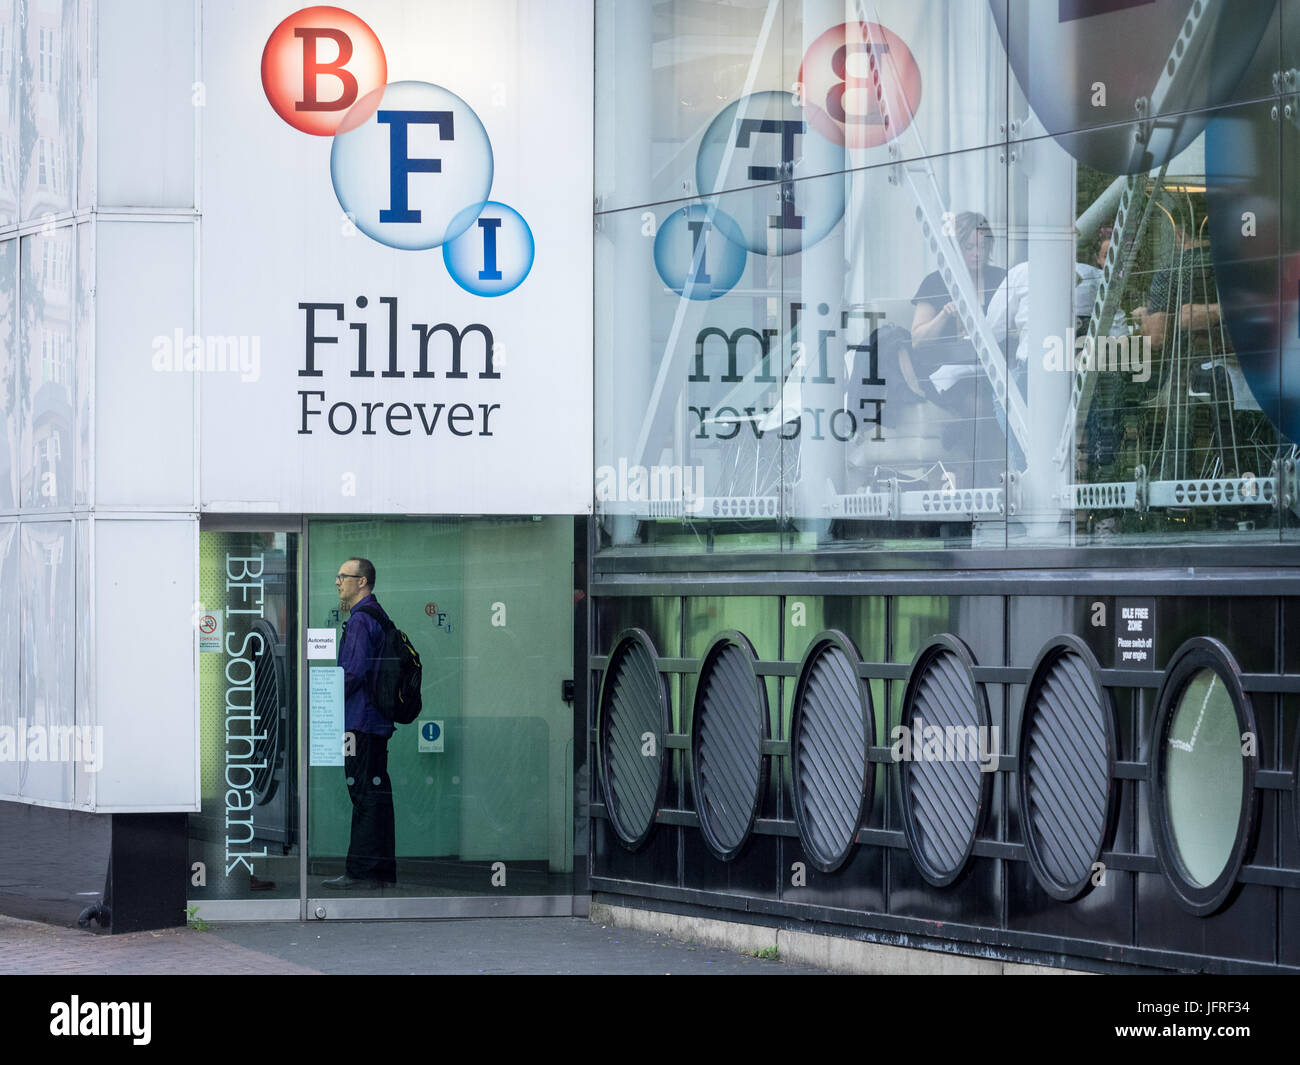 BFI London - Entrance to the British Film Institute centre on the South Bank, London, UK - Stock Image